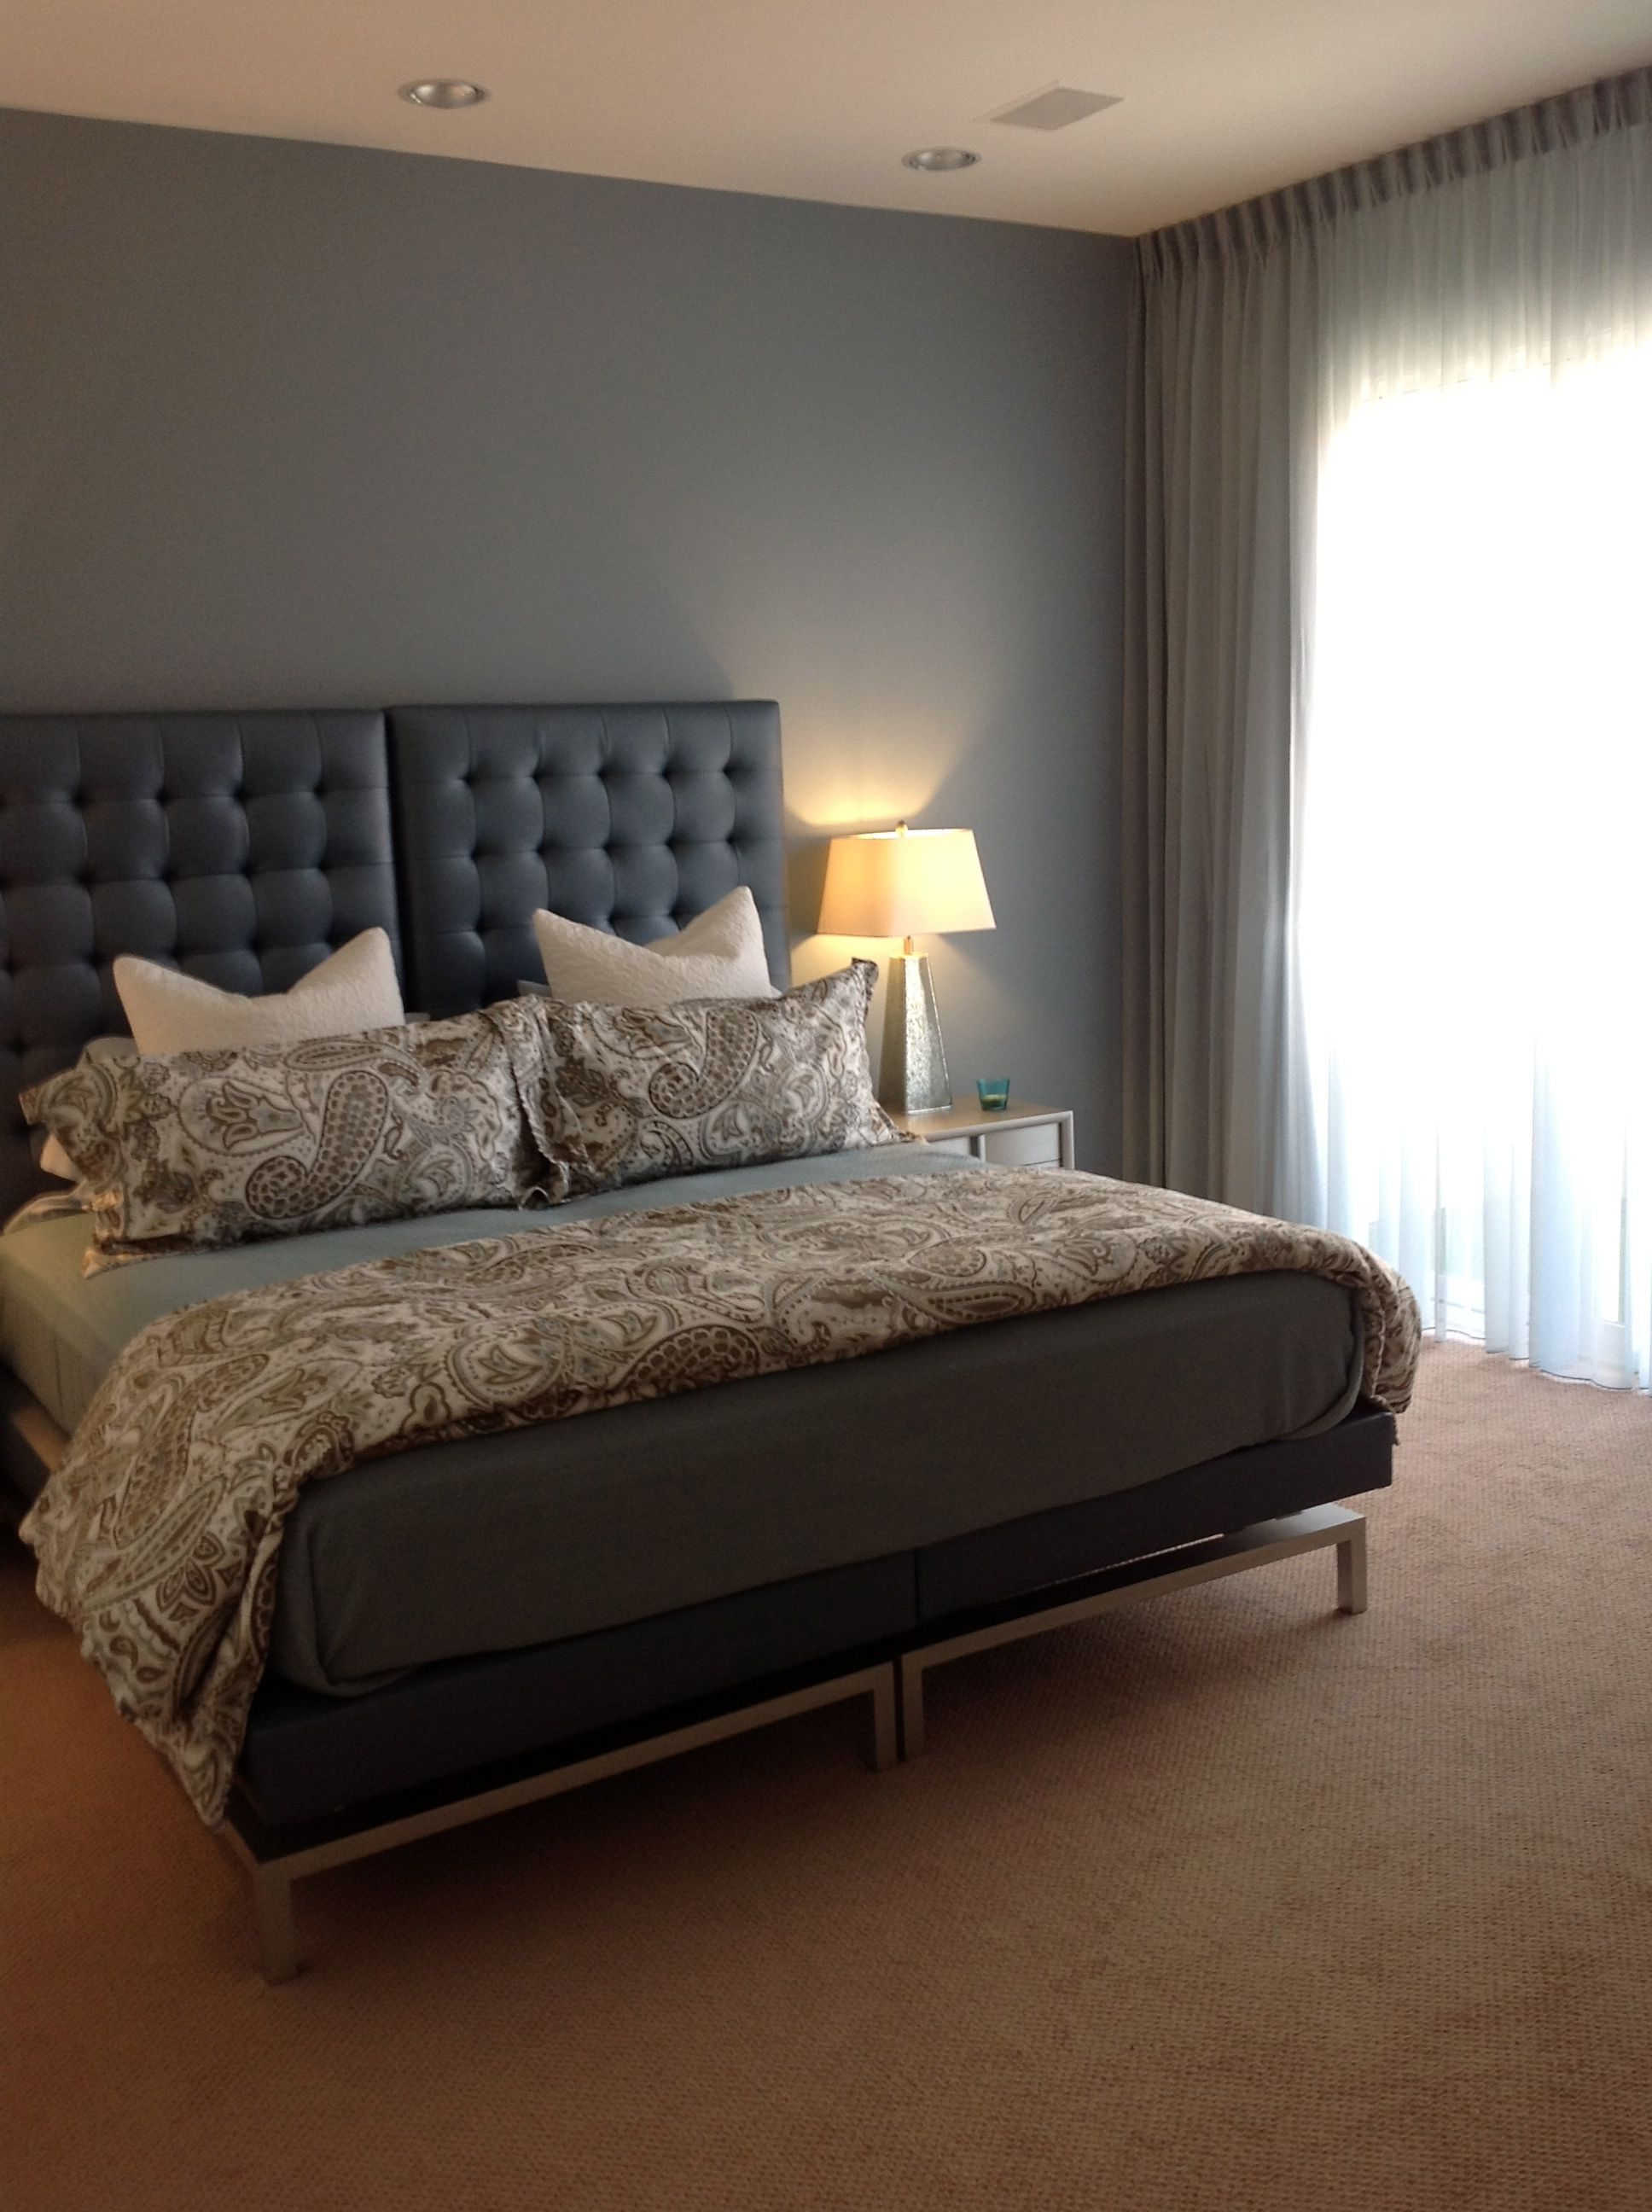 The blue guest room, I designed the custom King bed with